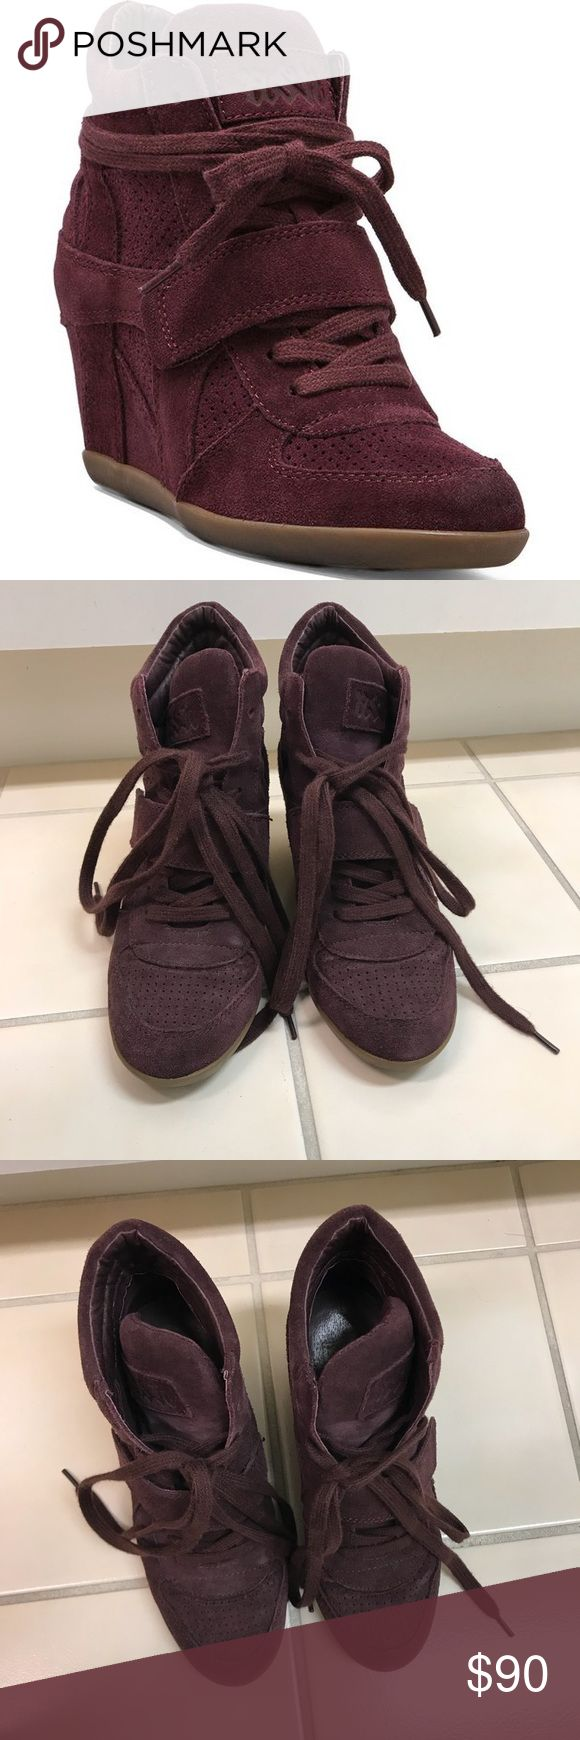 Ash Bowie Wedge Sneaker Purple / maroon color. Size 37 but fits more like a 6 / 6.5. Small scuff on the shoes (see pictures for small grey spot on top of shoe). Worn a handful of times, as you can see the bottom sole is still in like new condition! Ash Shoes Sneakers